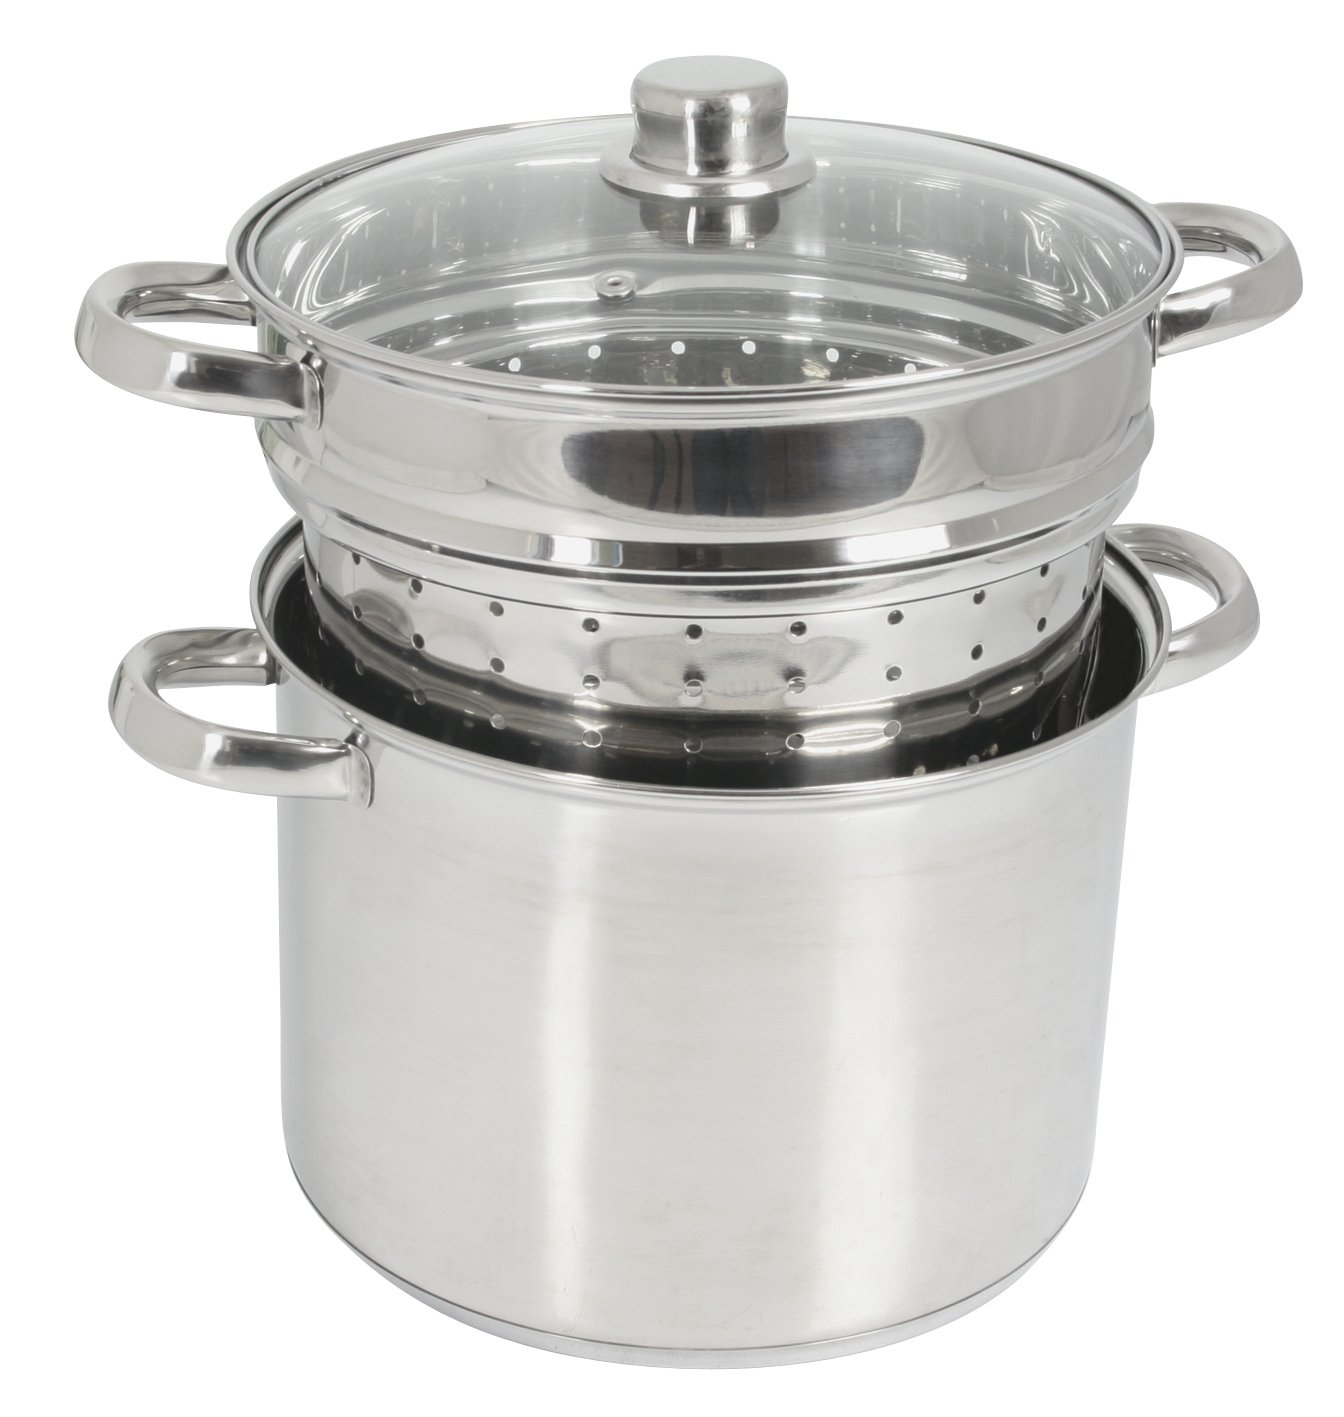 Crealys 504626 Pasta Cooker with Glass Lid 8 L Diameter 24 cm Olympe